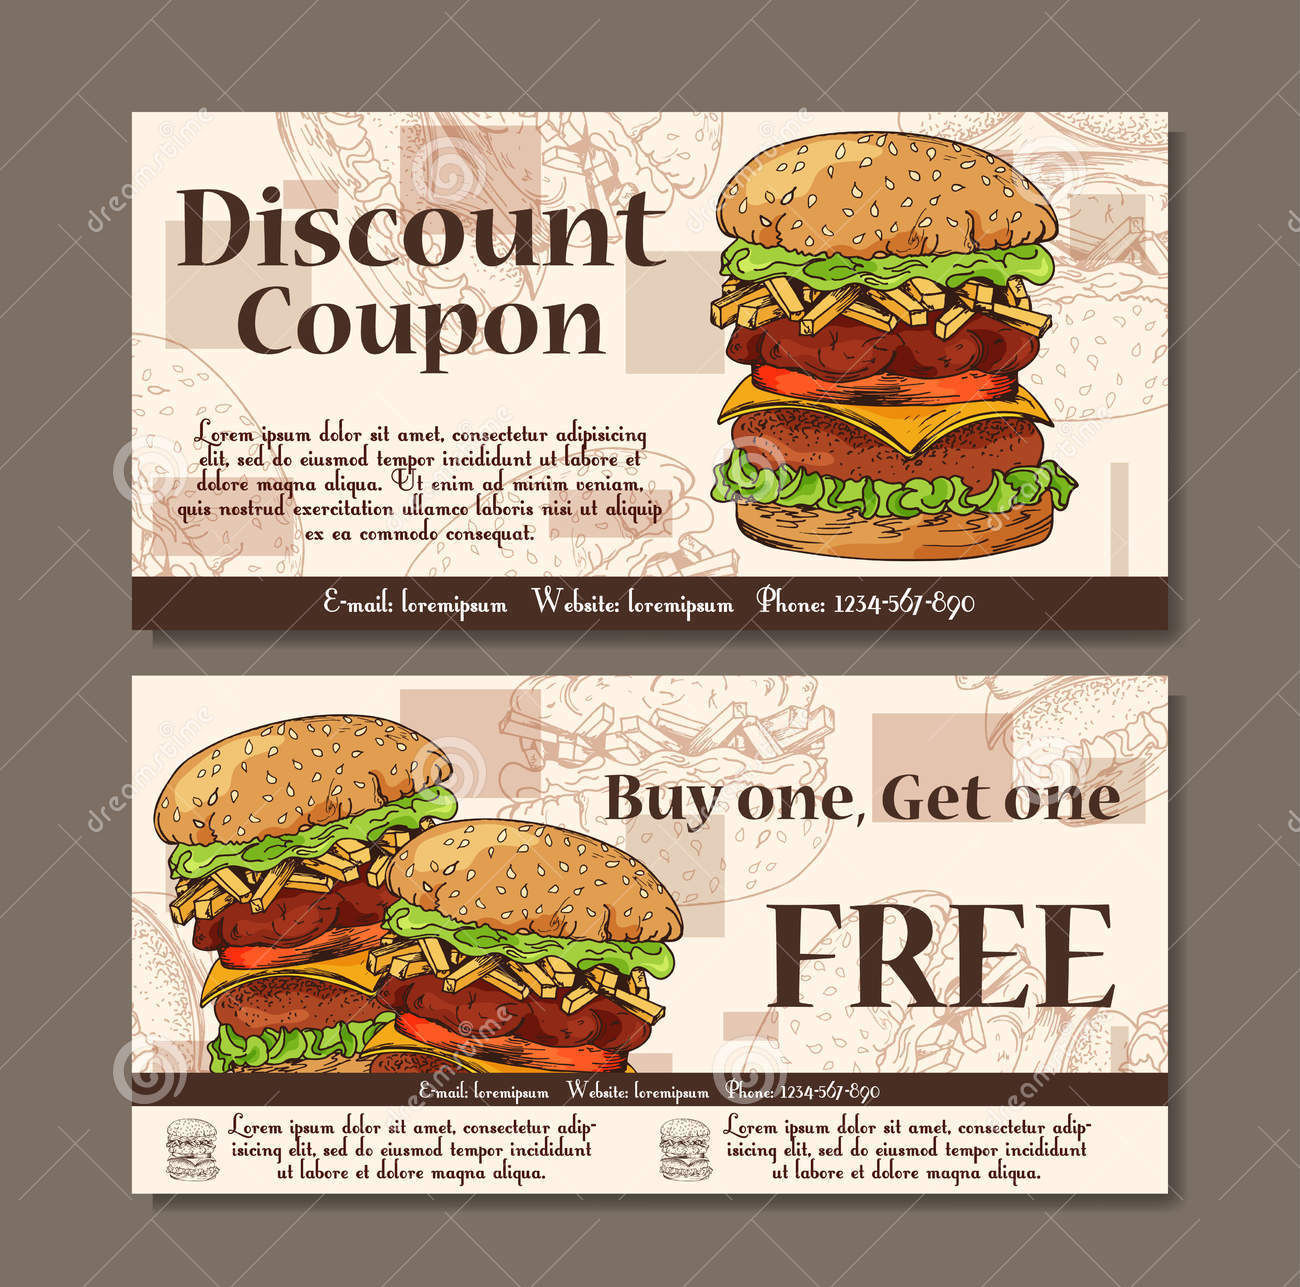 Discount coupons for restaurants in chennai